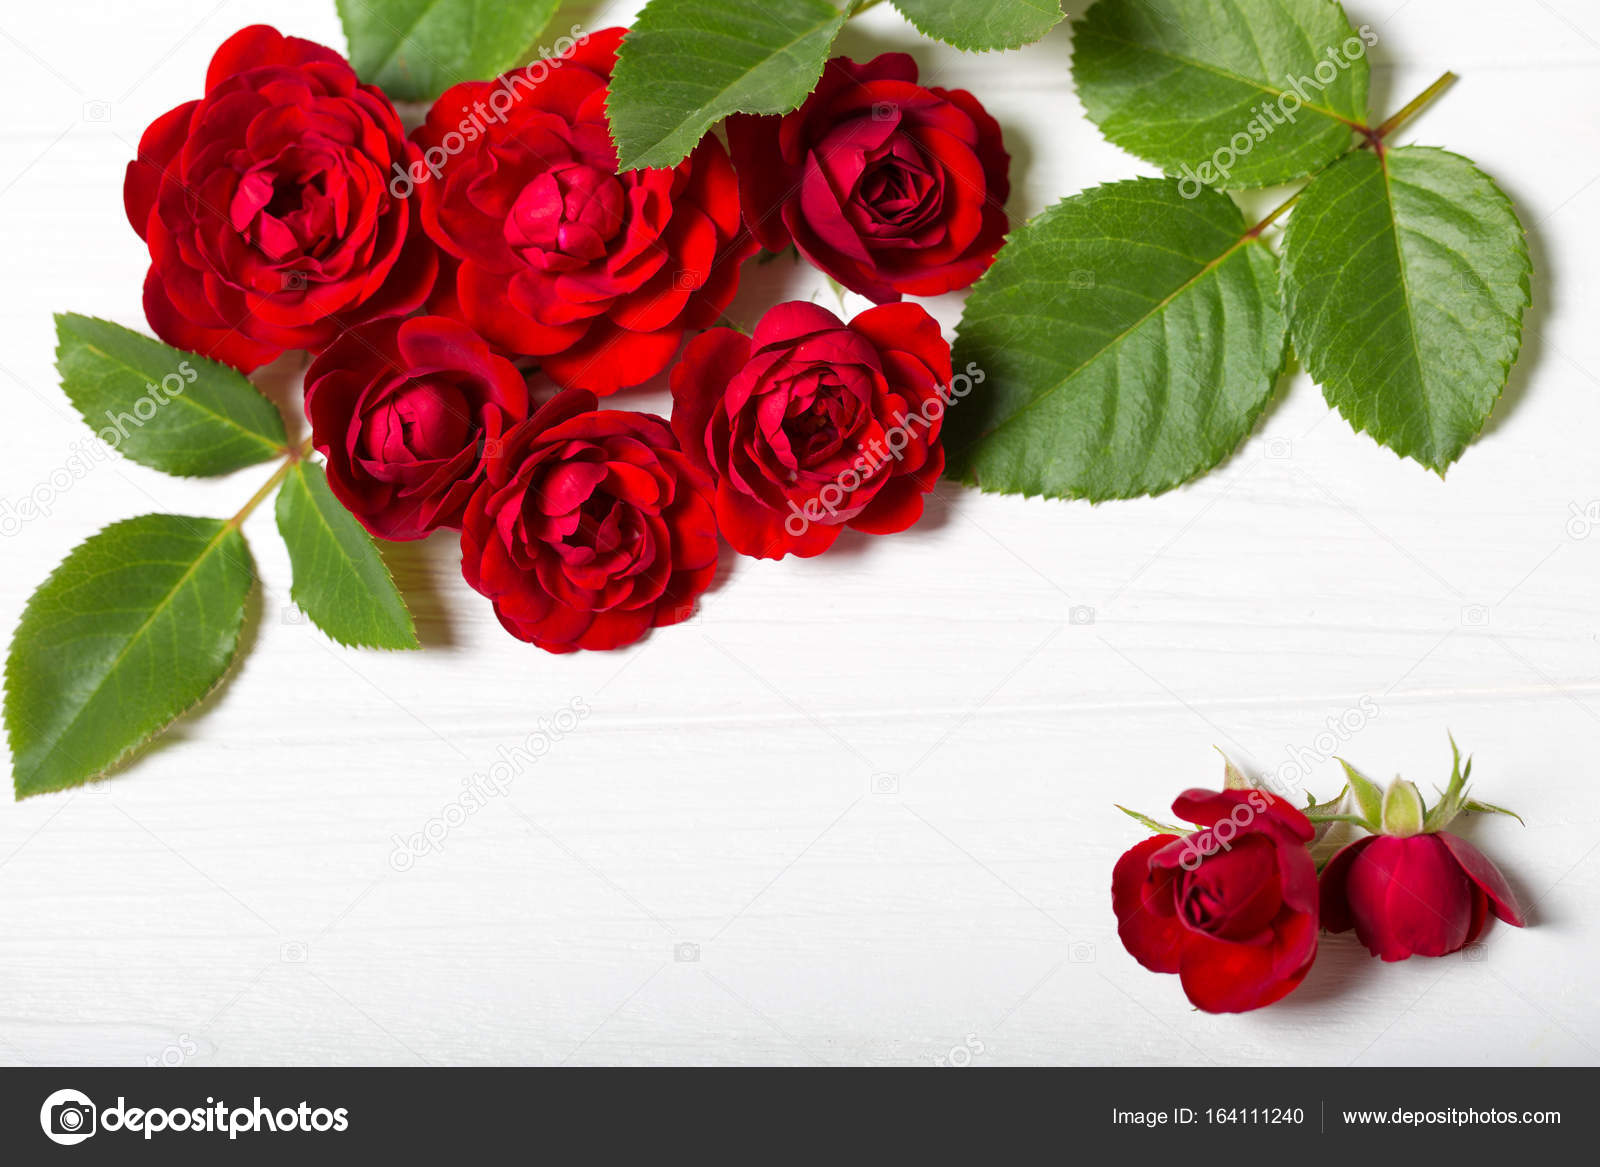 Red roses beautiful flowers on a white deoevian table empty space red roses beautiful flowers on a white deoevian table empty space for text izmirmasajfo